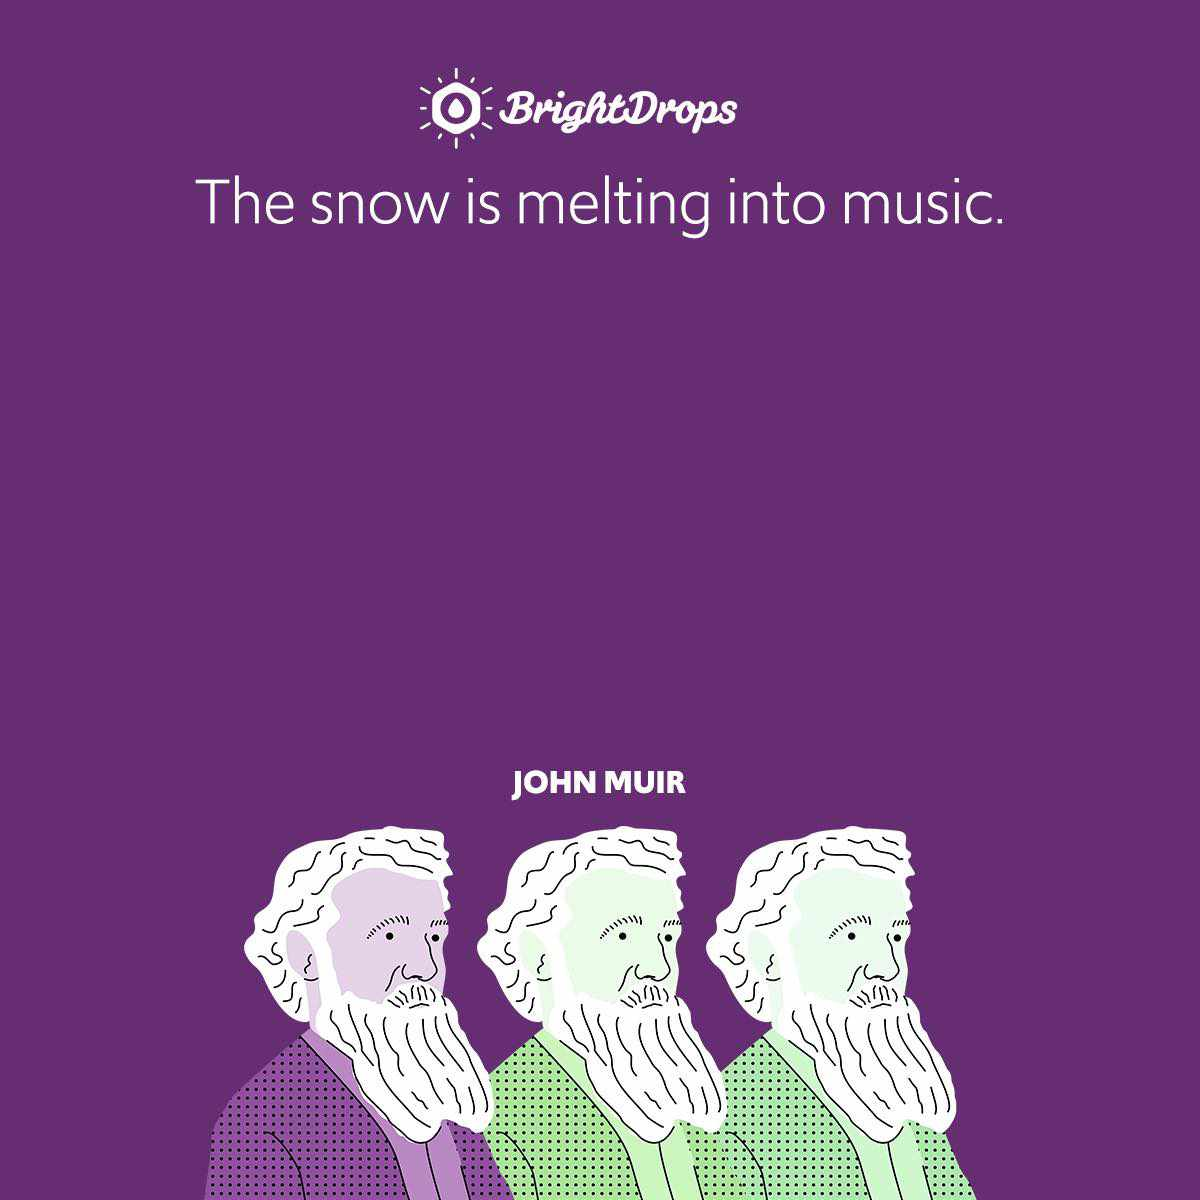 The snow is melting into music.